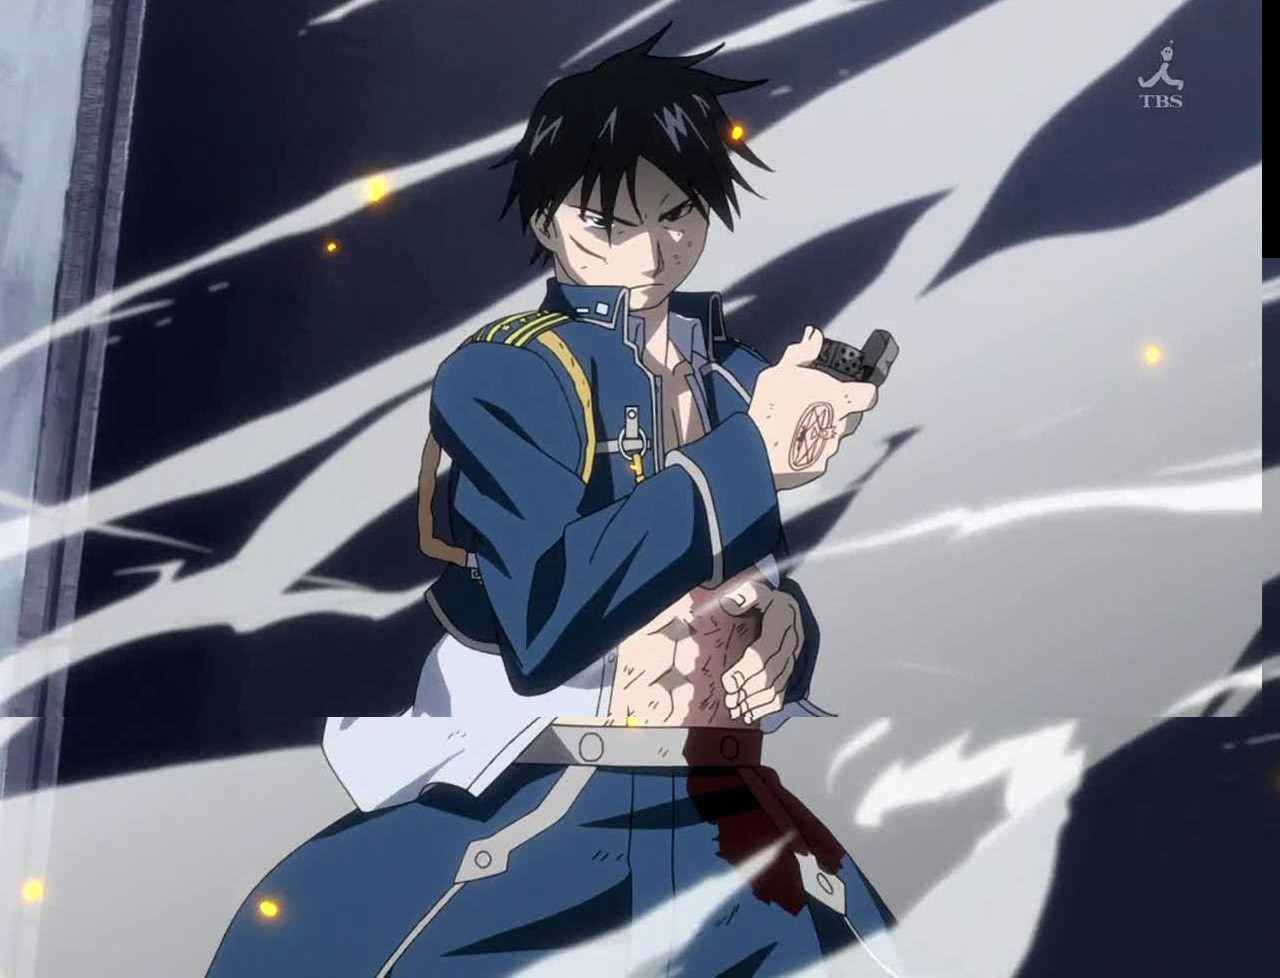 Roy Mustang roy mustang 17924130 1280 978 Top 15 Anime Flame Users